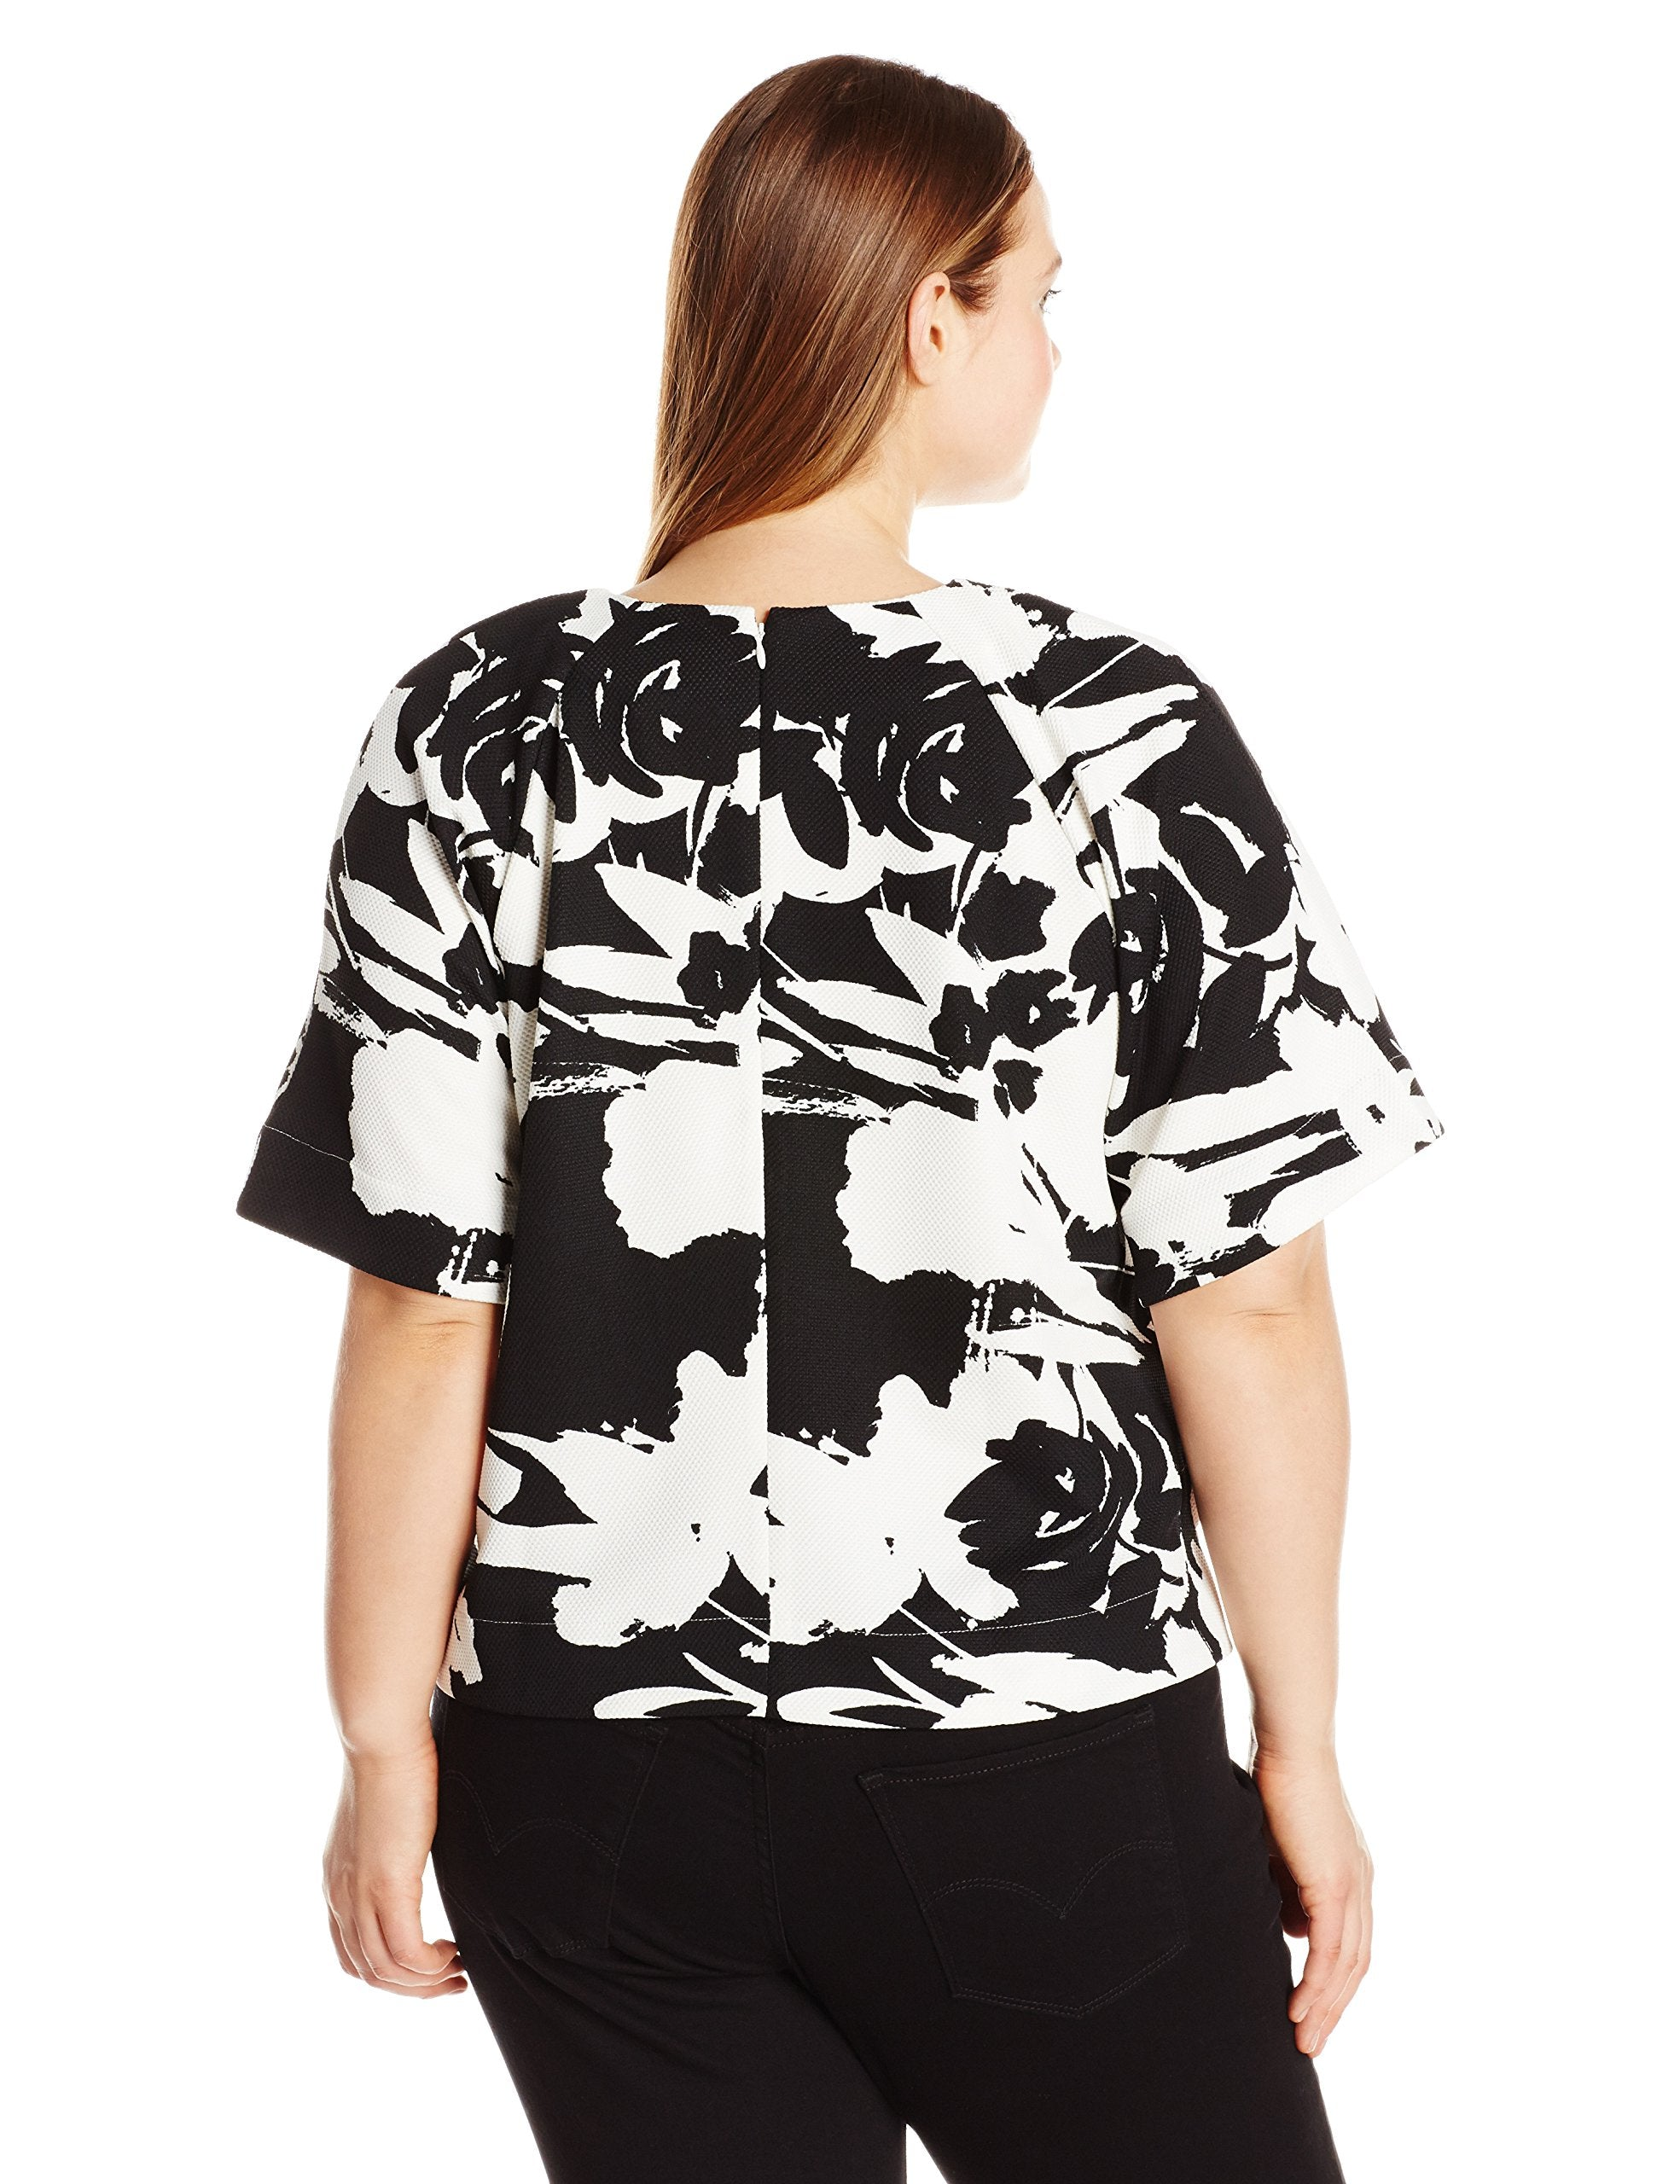 Joan Vass Women's Plus Size Printed Pique Top.